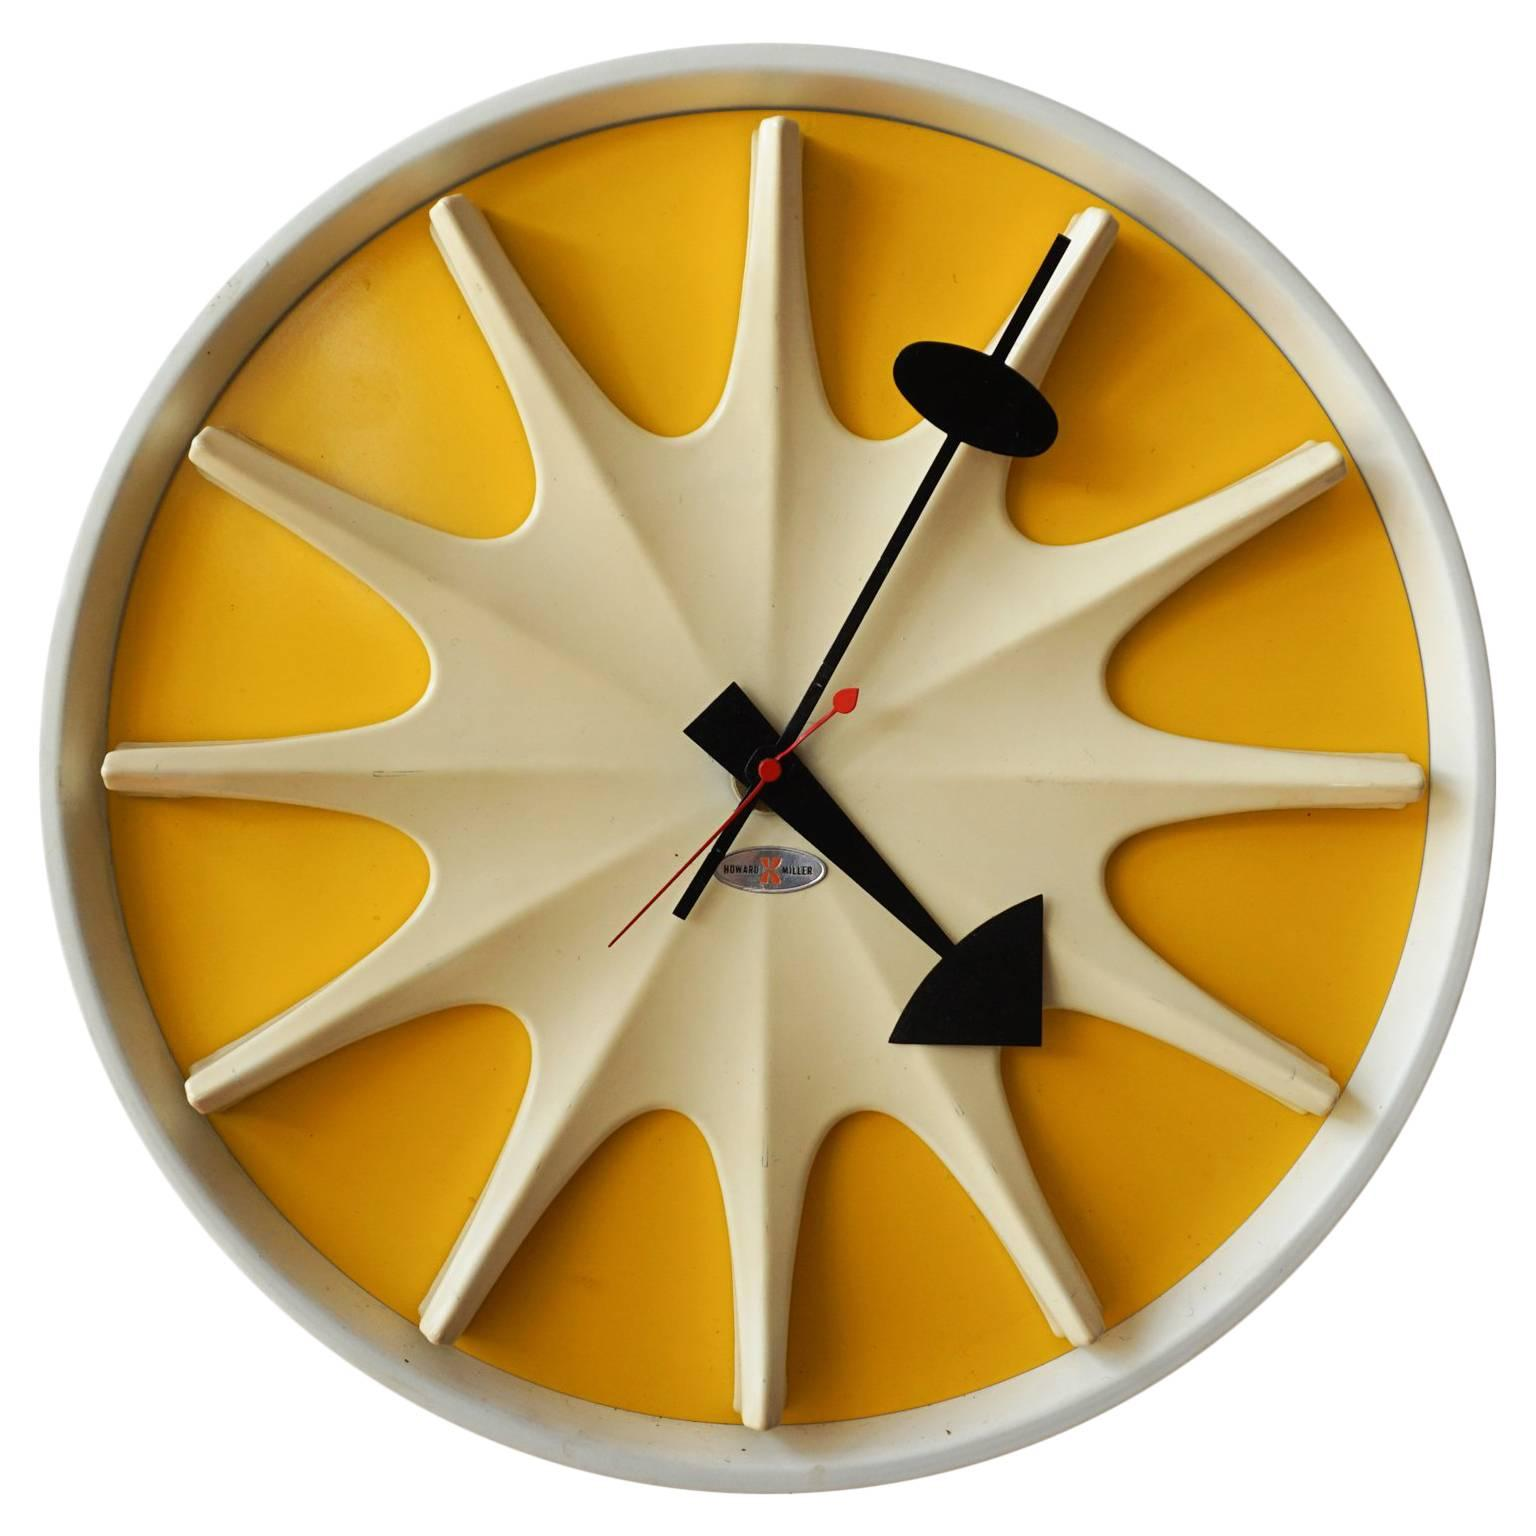 Irving Harper for George Nelson Wall Clock, 1959 at 1stdibs